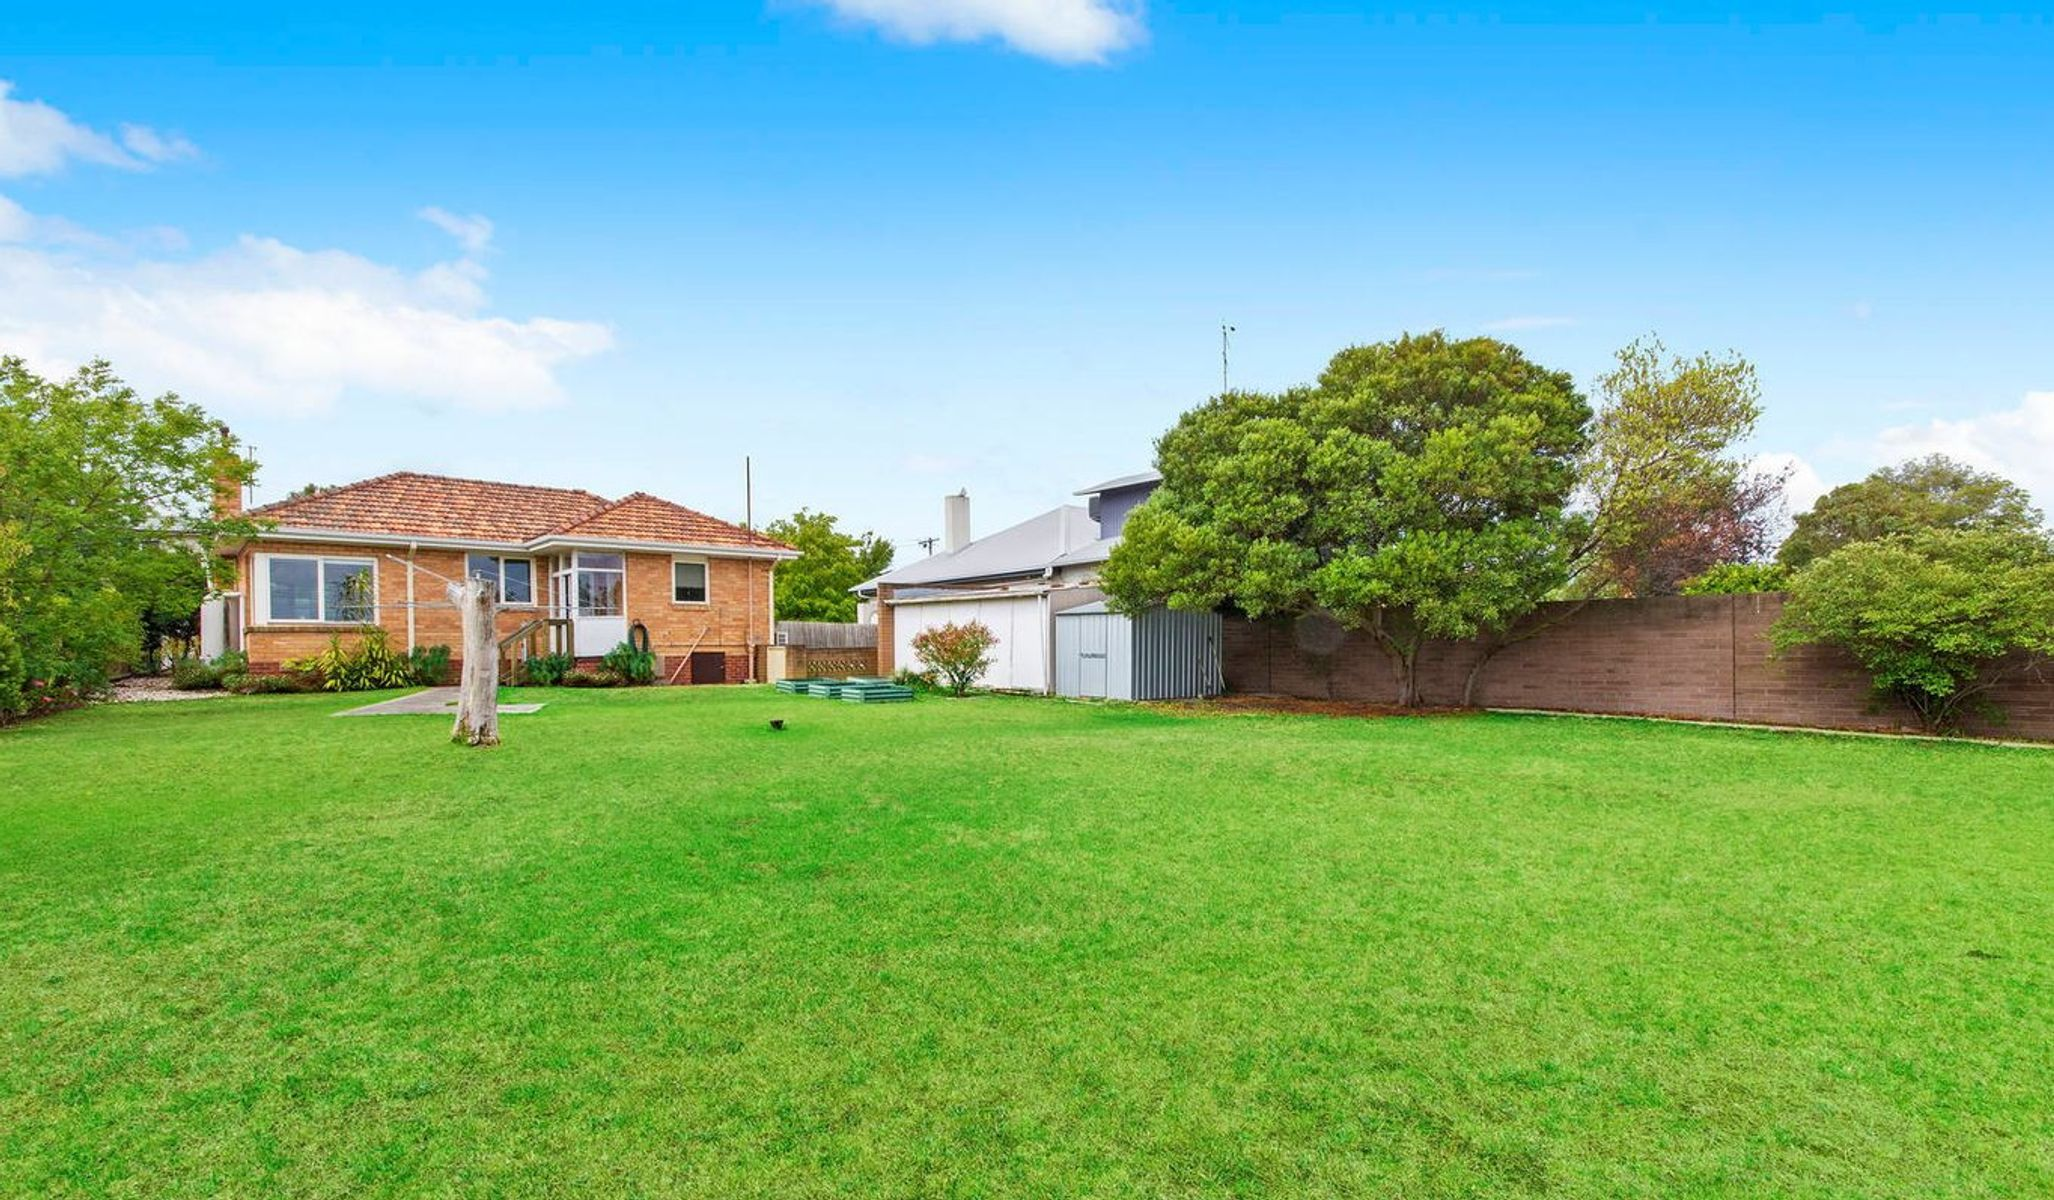 11 Vista Road, Newtown, VIC 3220